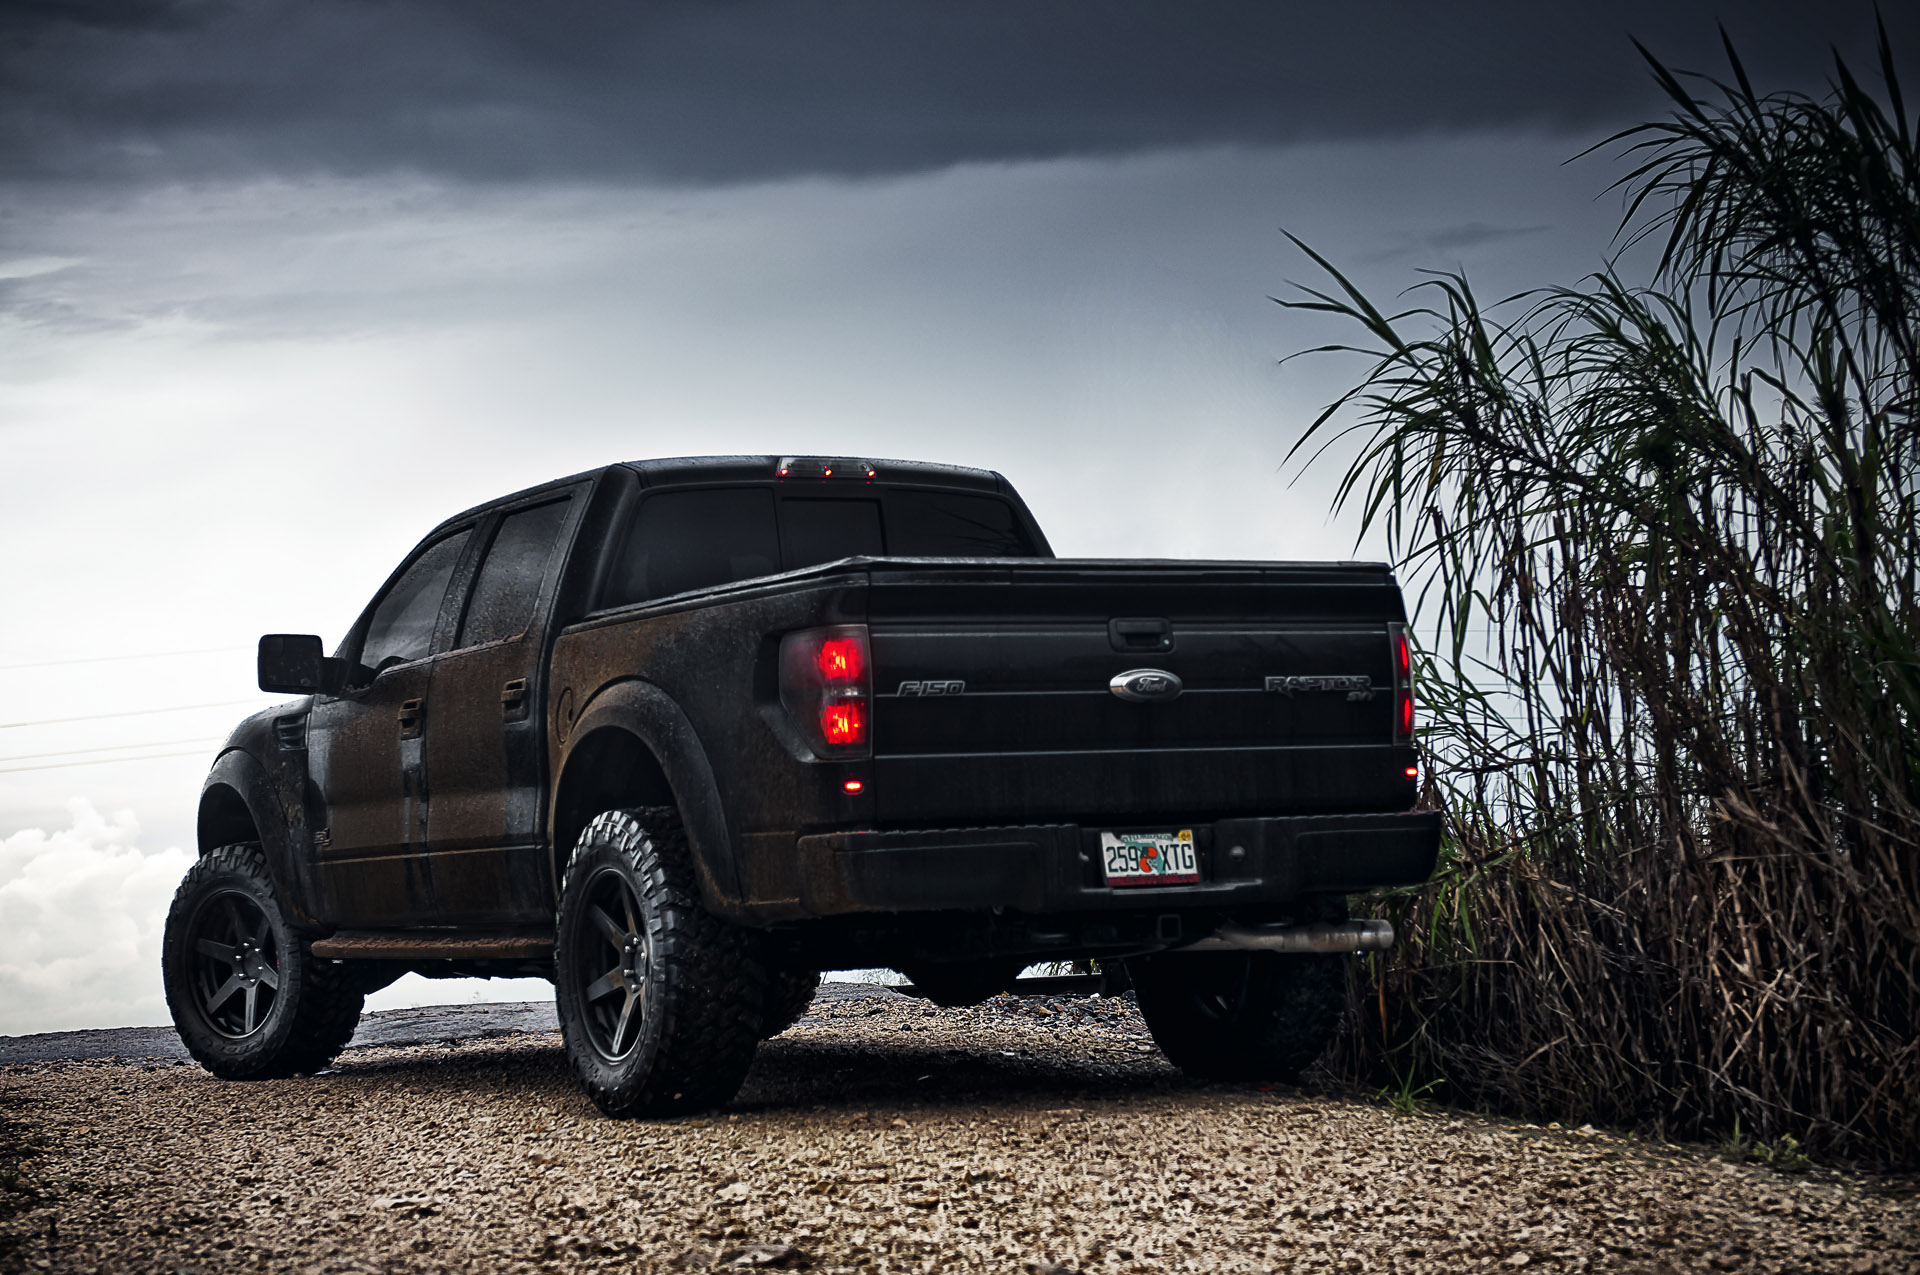 Ford F-150 Wallpapers (38 images) - DodoWallpaper